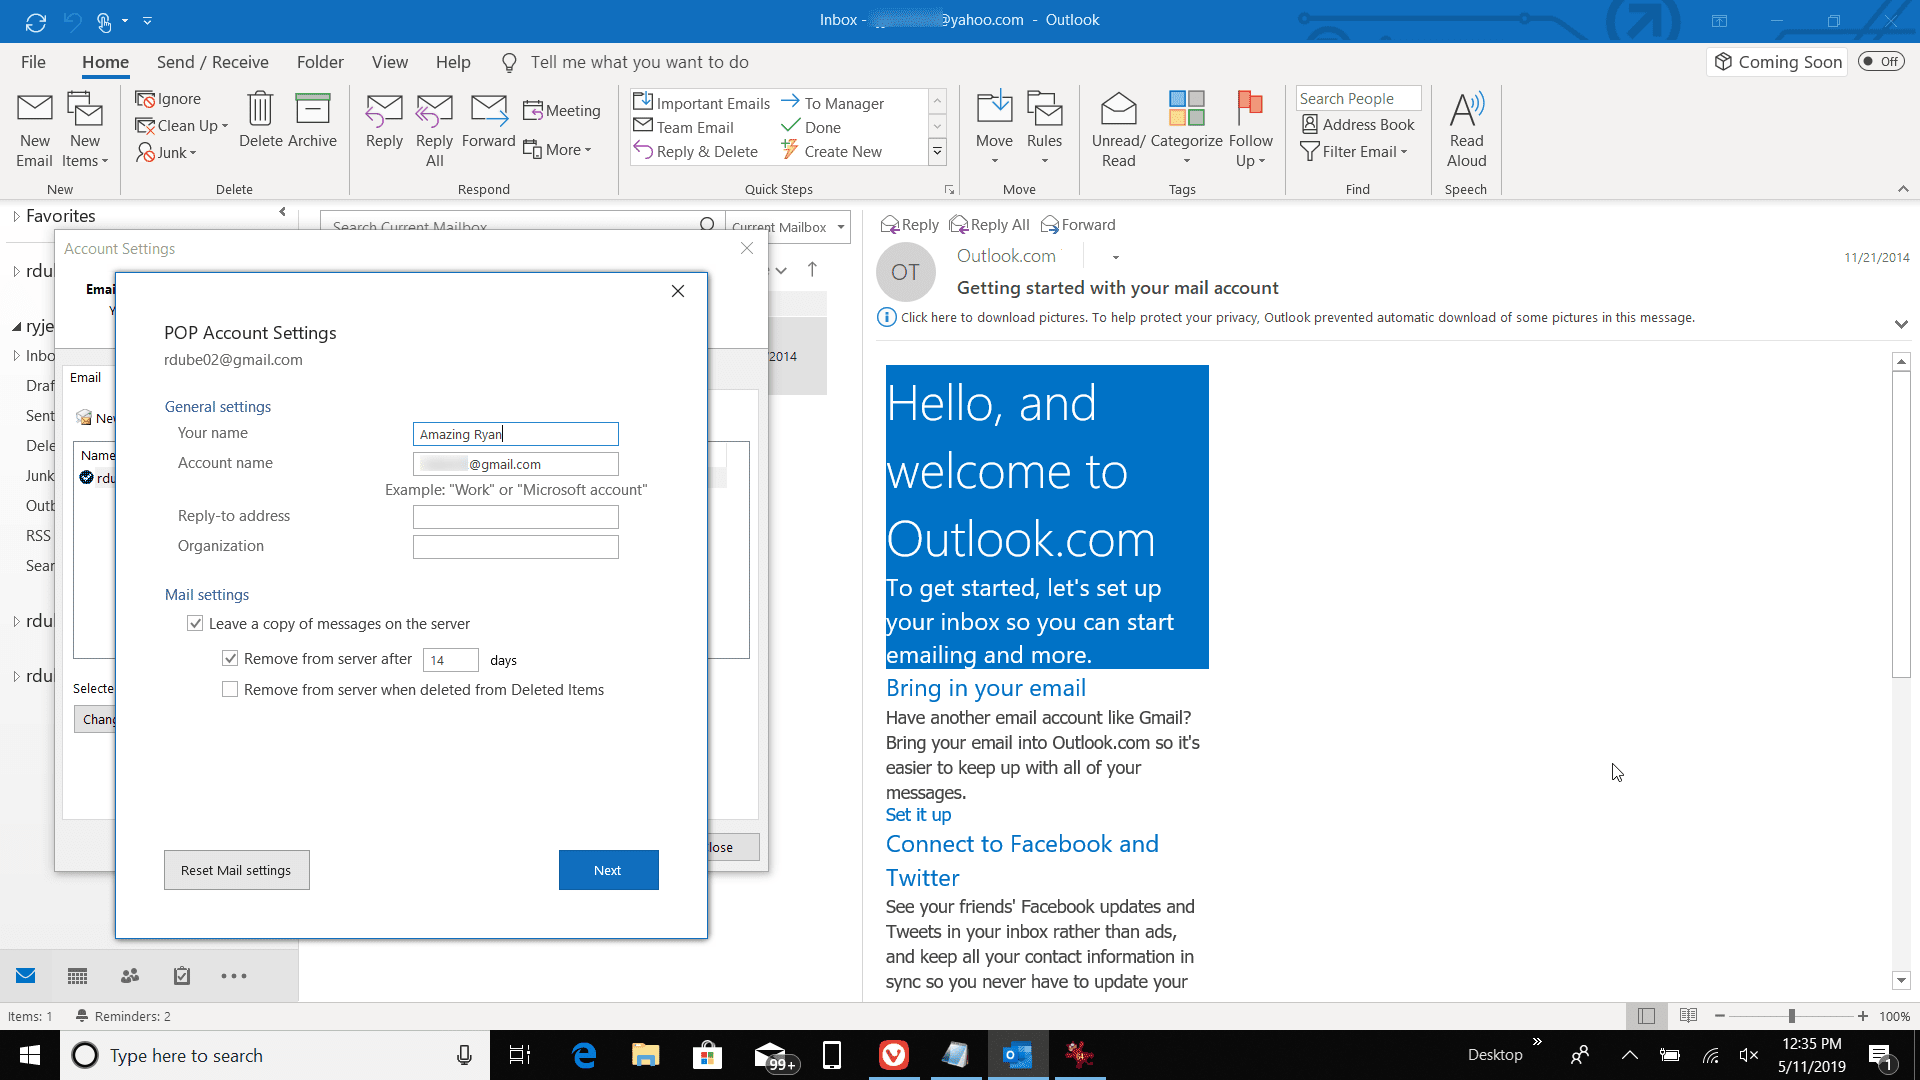 How to Change the Email Sender Name in Microsoft Outlook